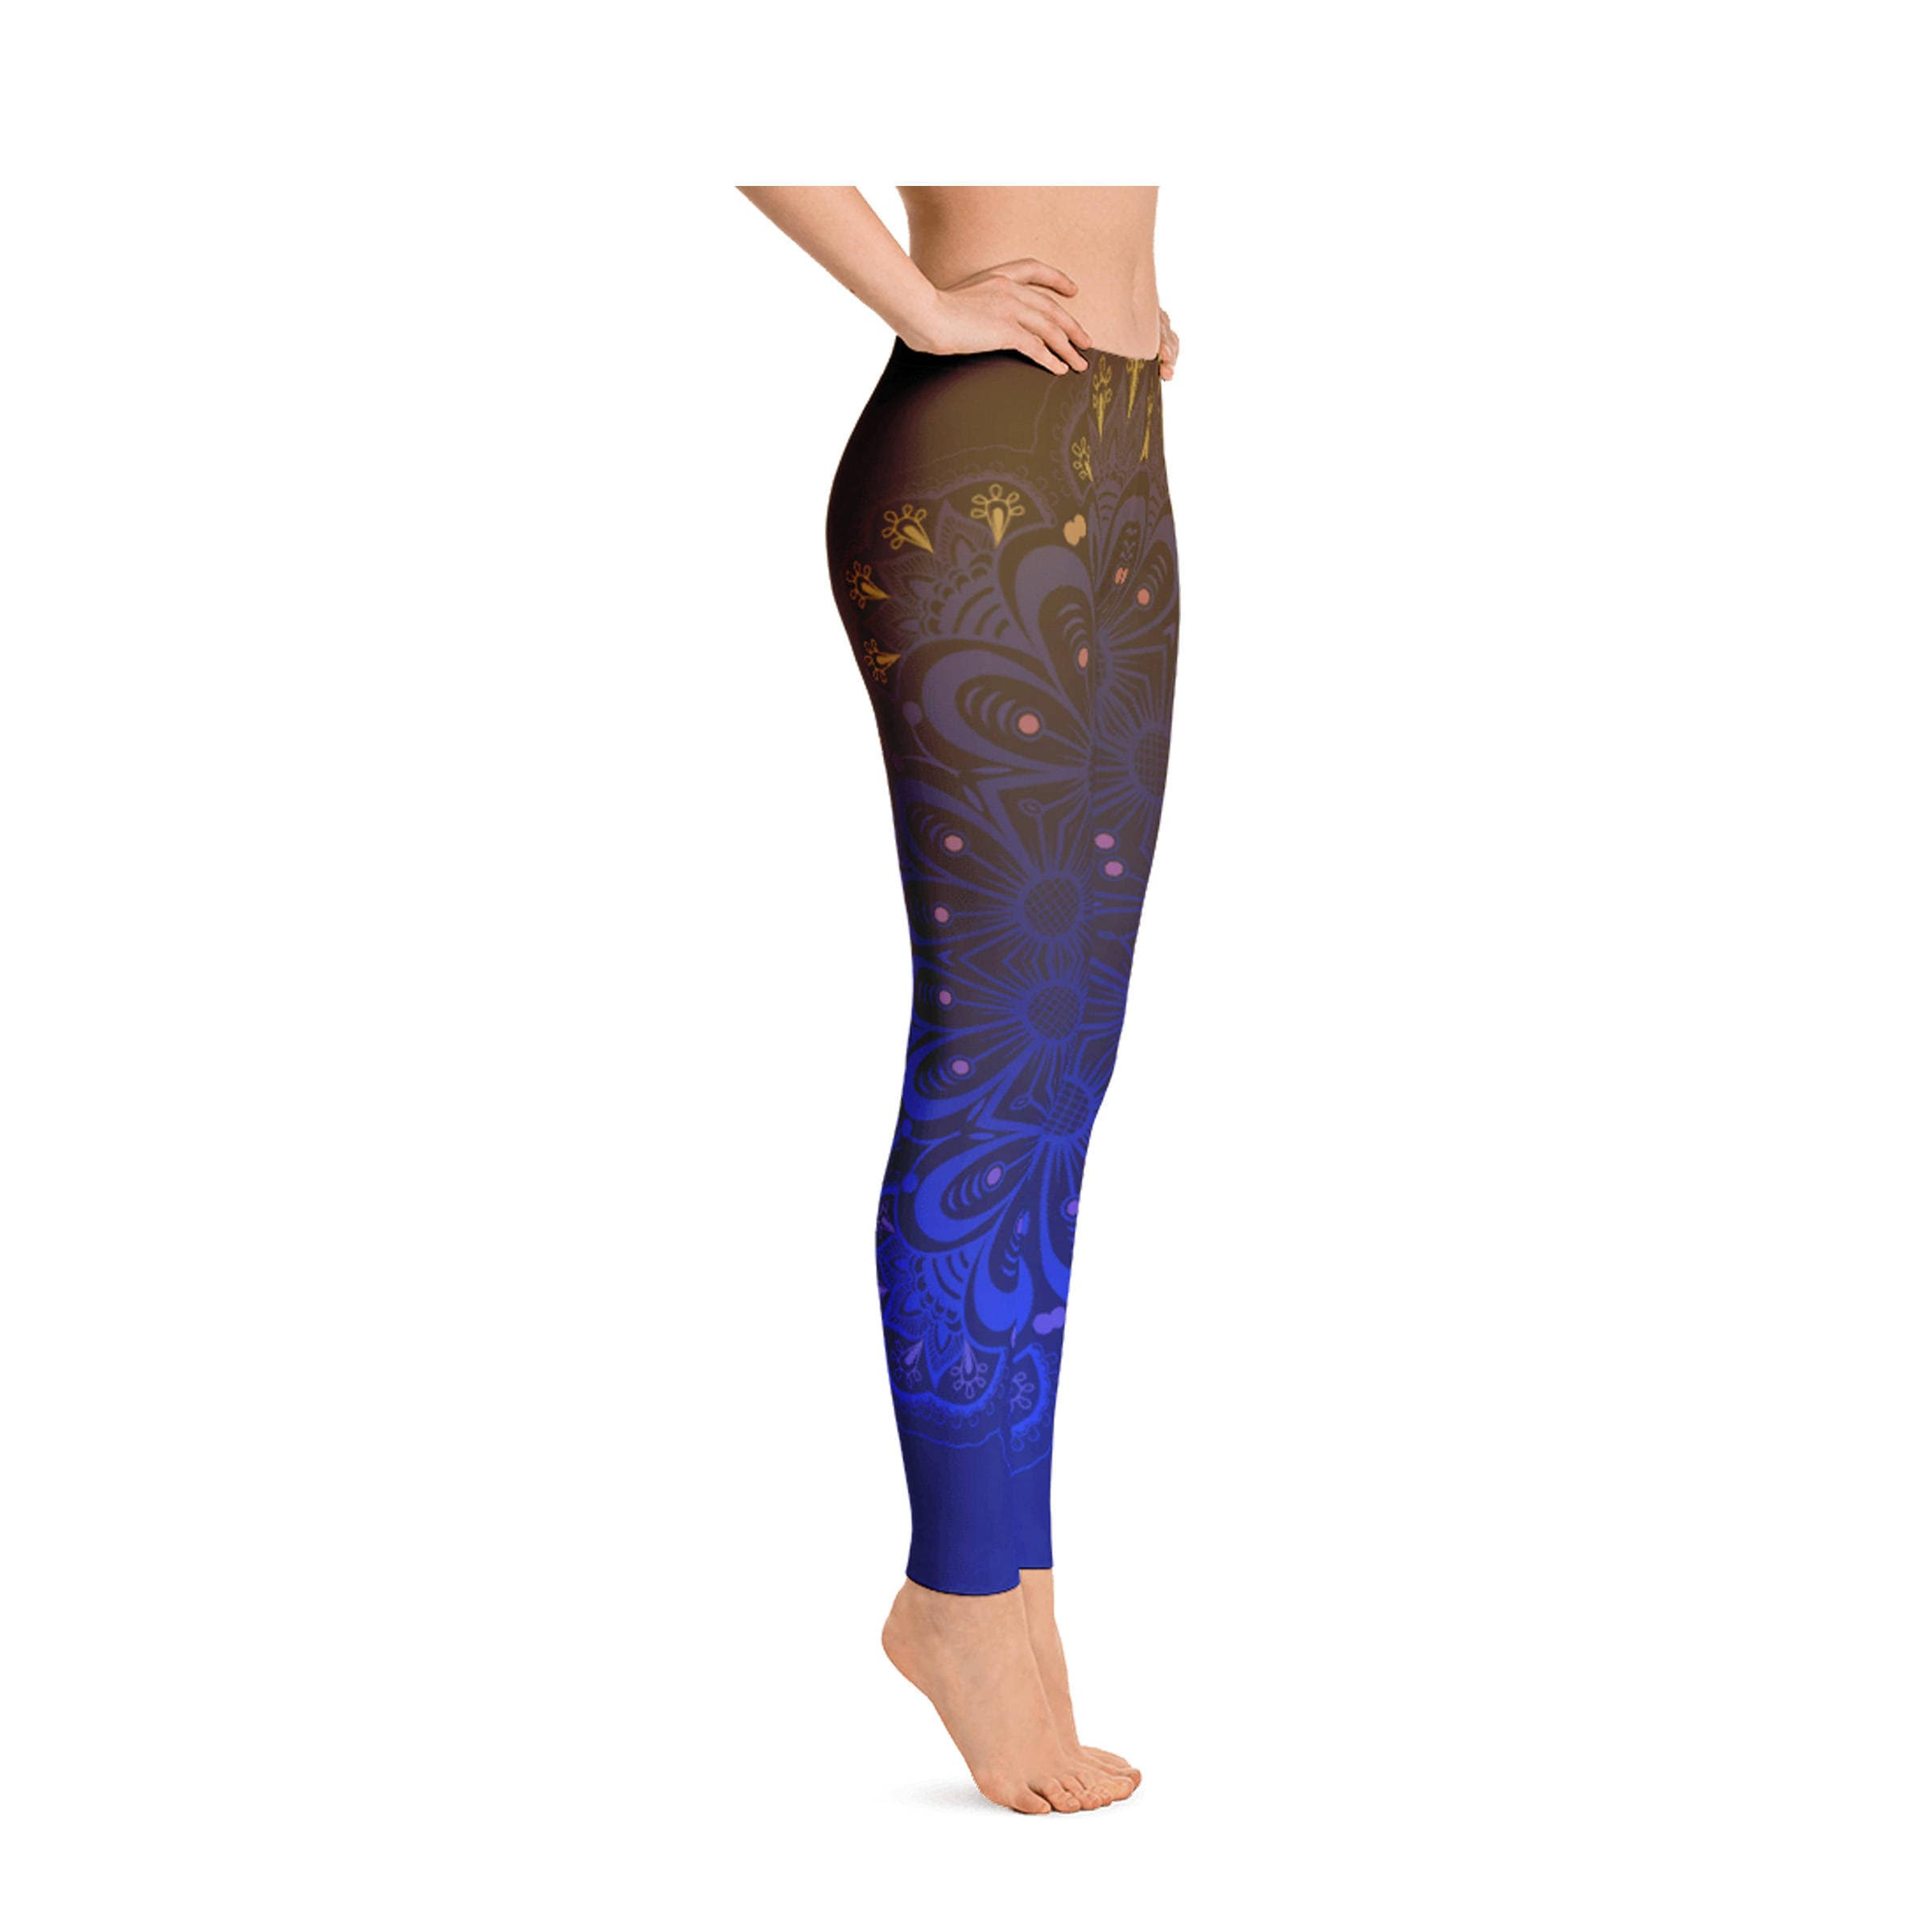 57a6ff4620 Womens Leggings, Boho Ombre Mandala Print Leggings, Exercise Yoga ...